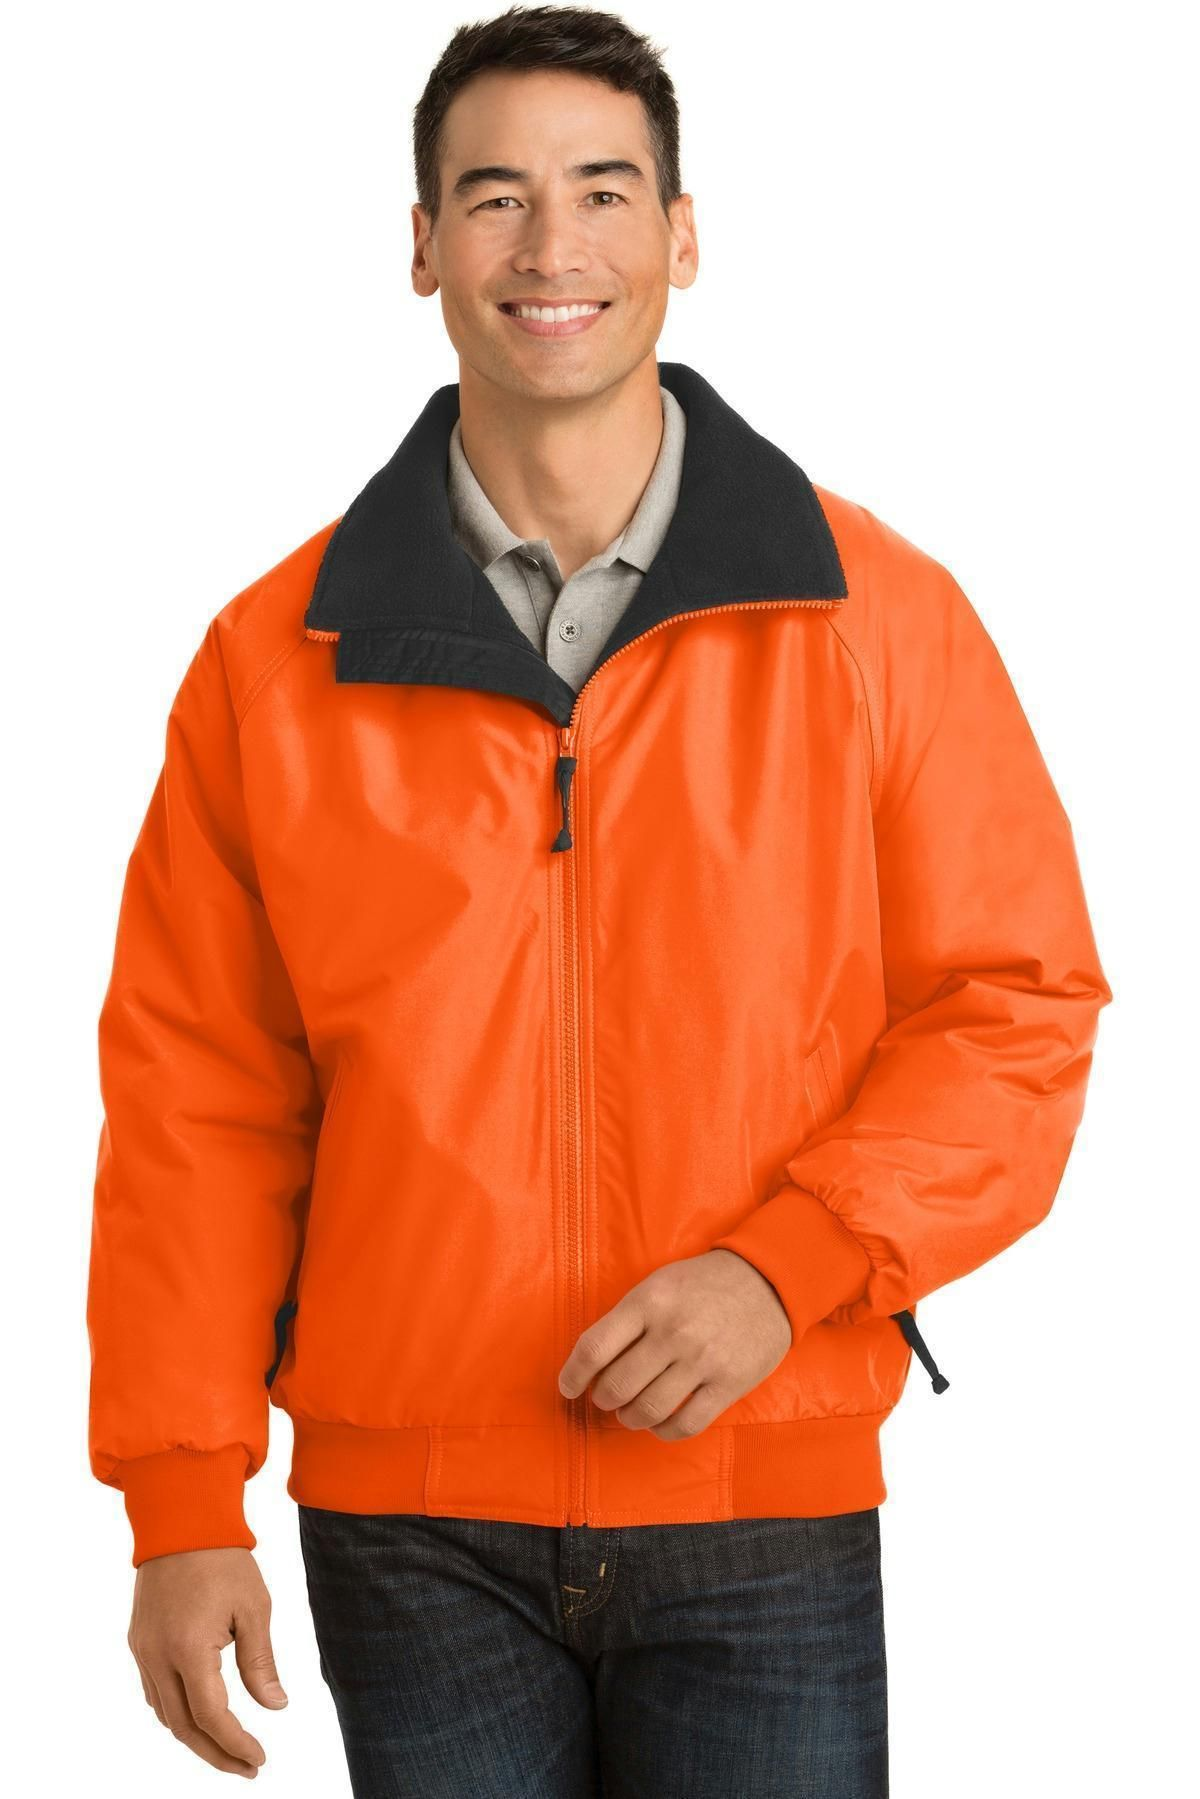 Port Authority Safety Challenger Jacket with Reflective Taping Safety Yellow and Reflective 6XL